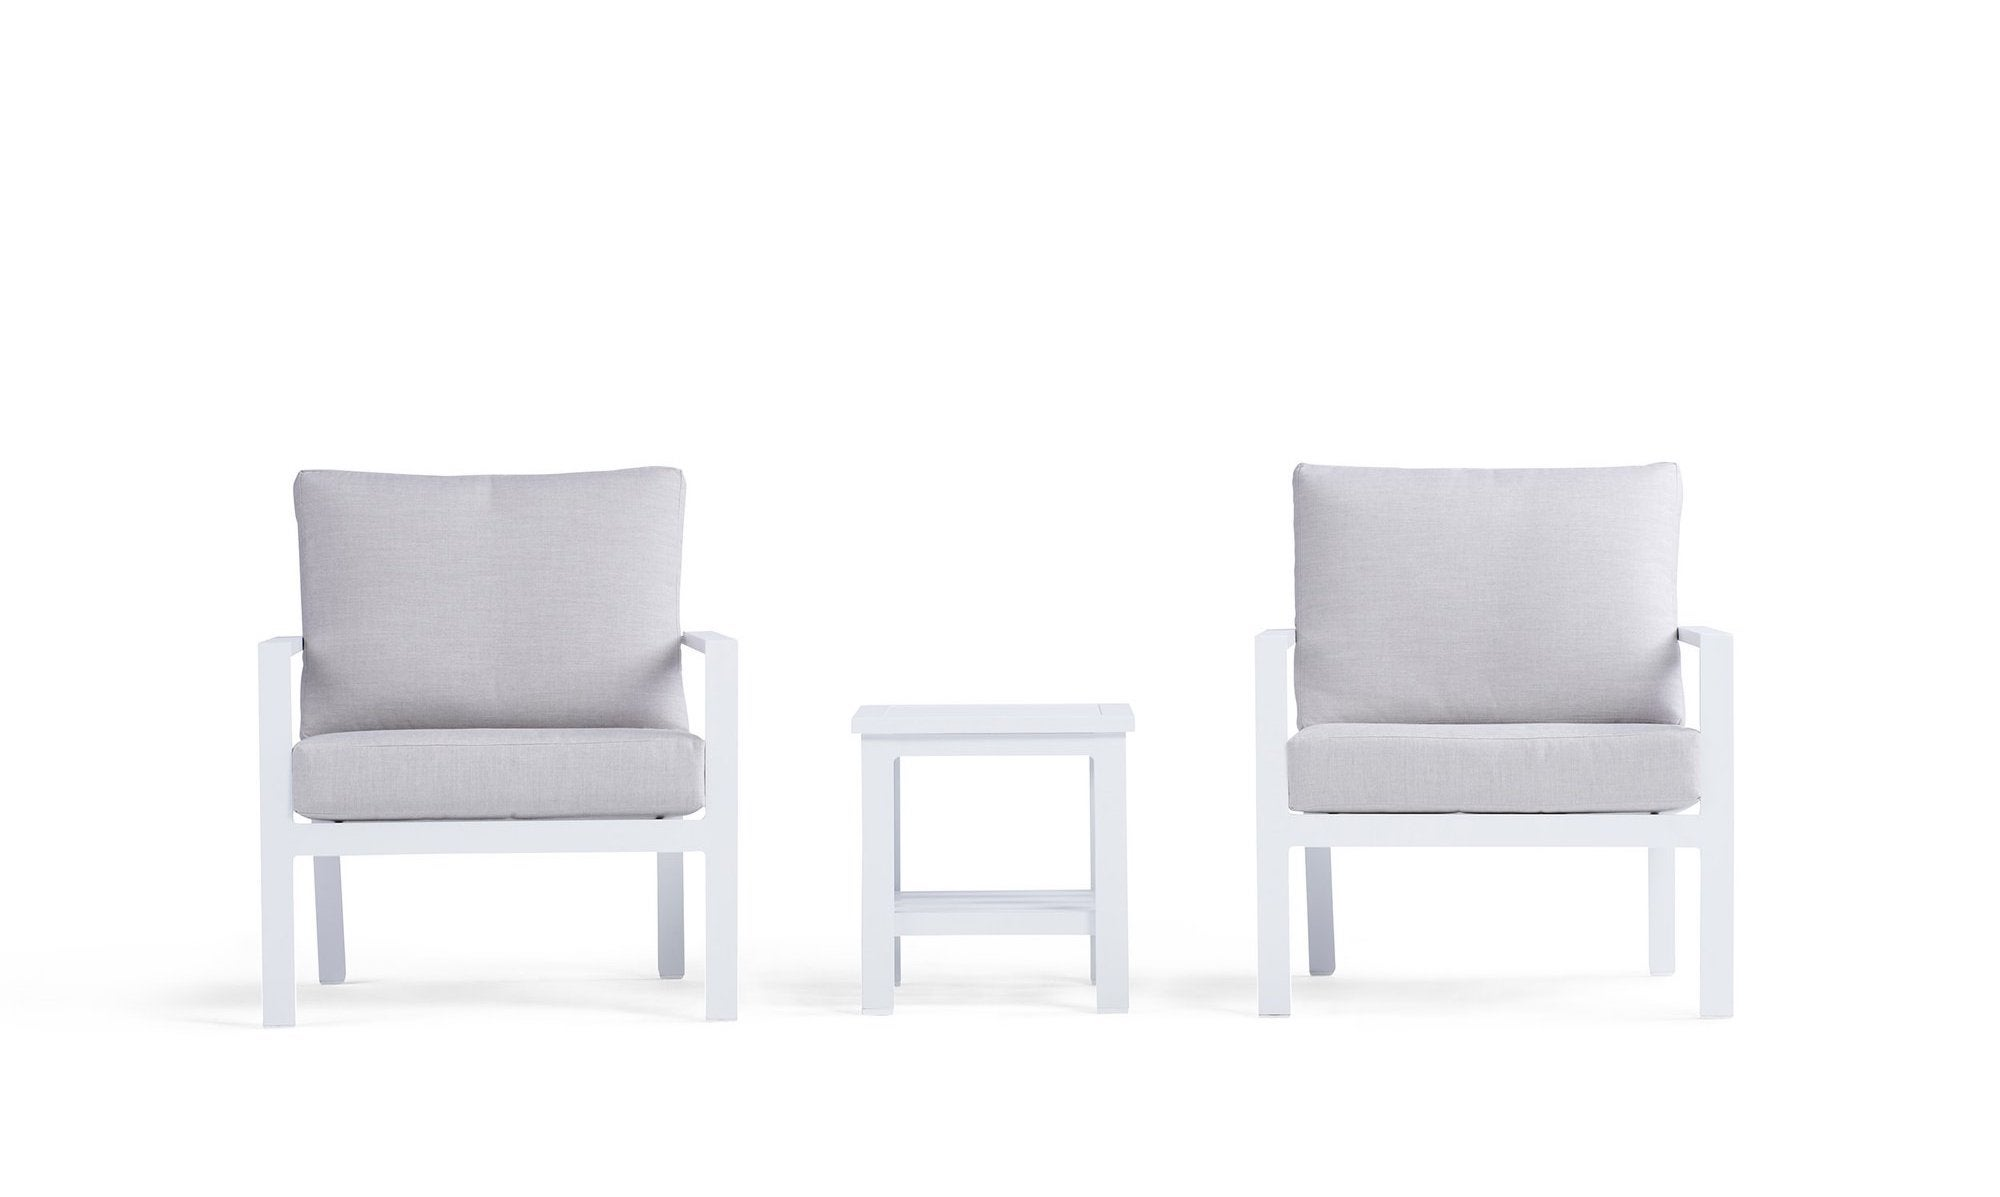 Gray and white outdoor chairs with table